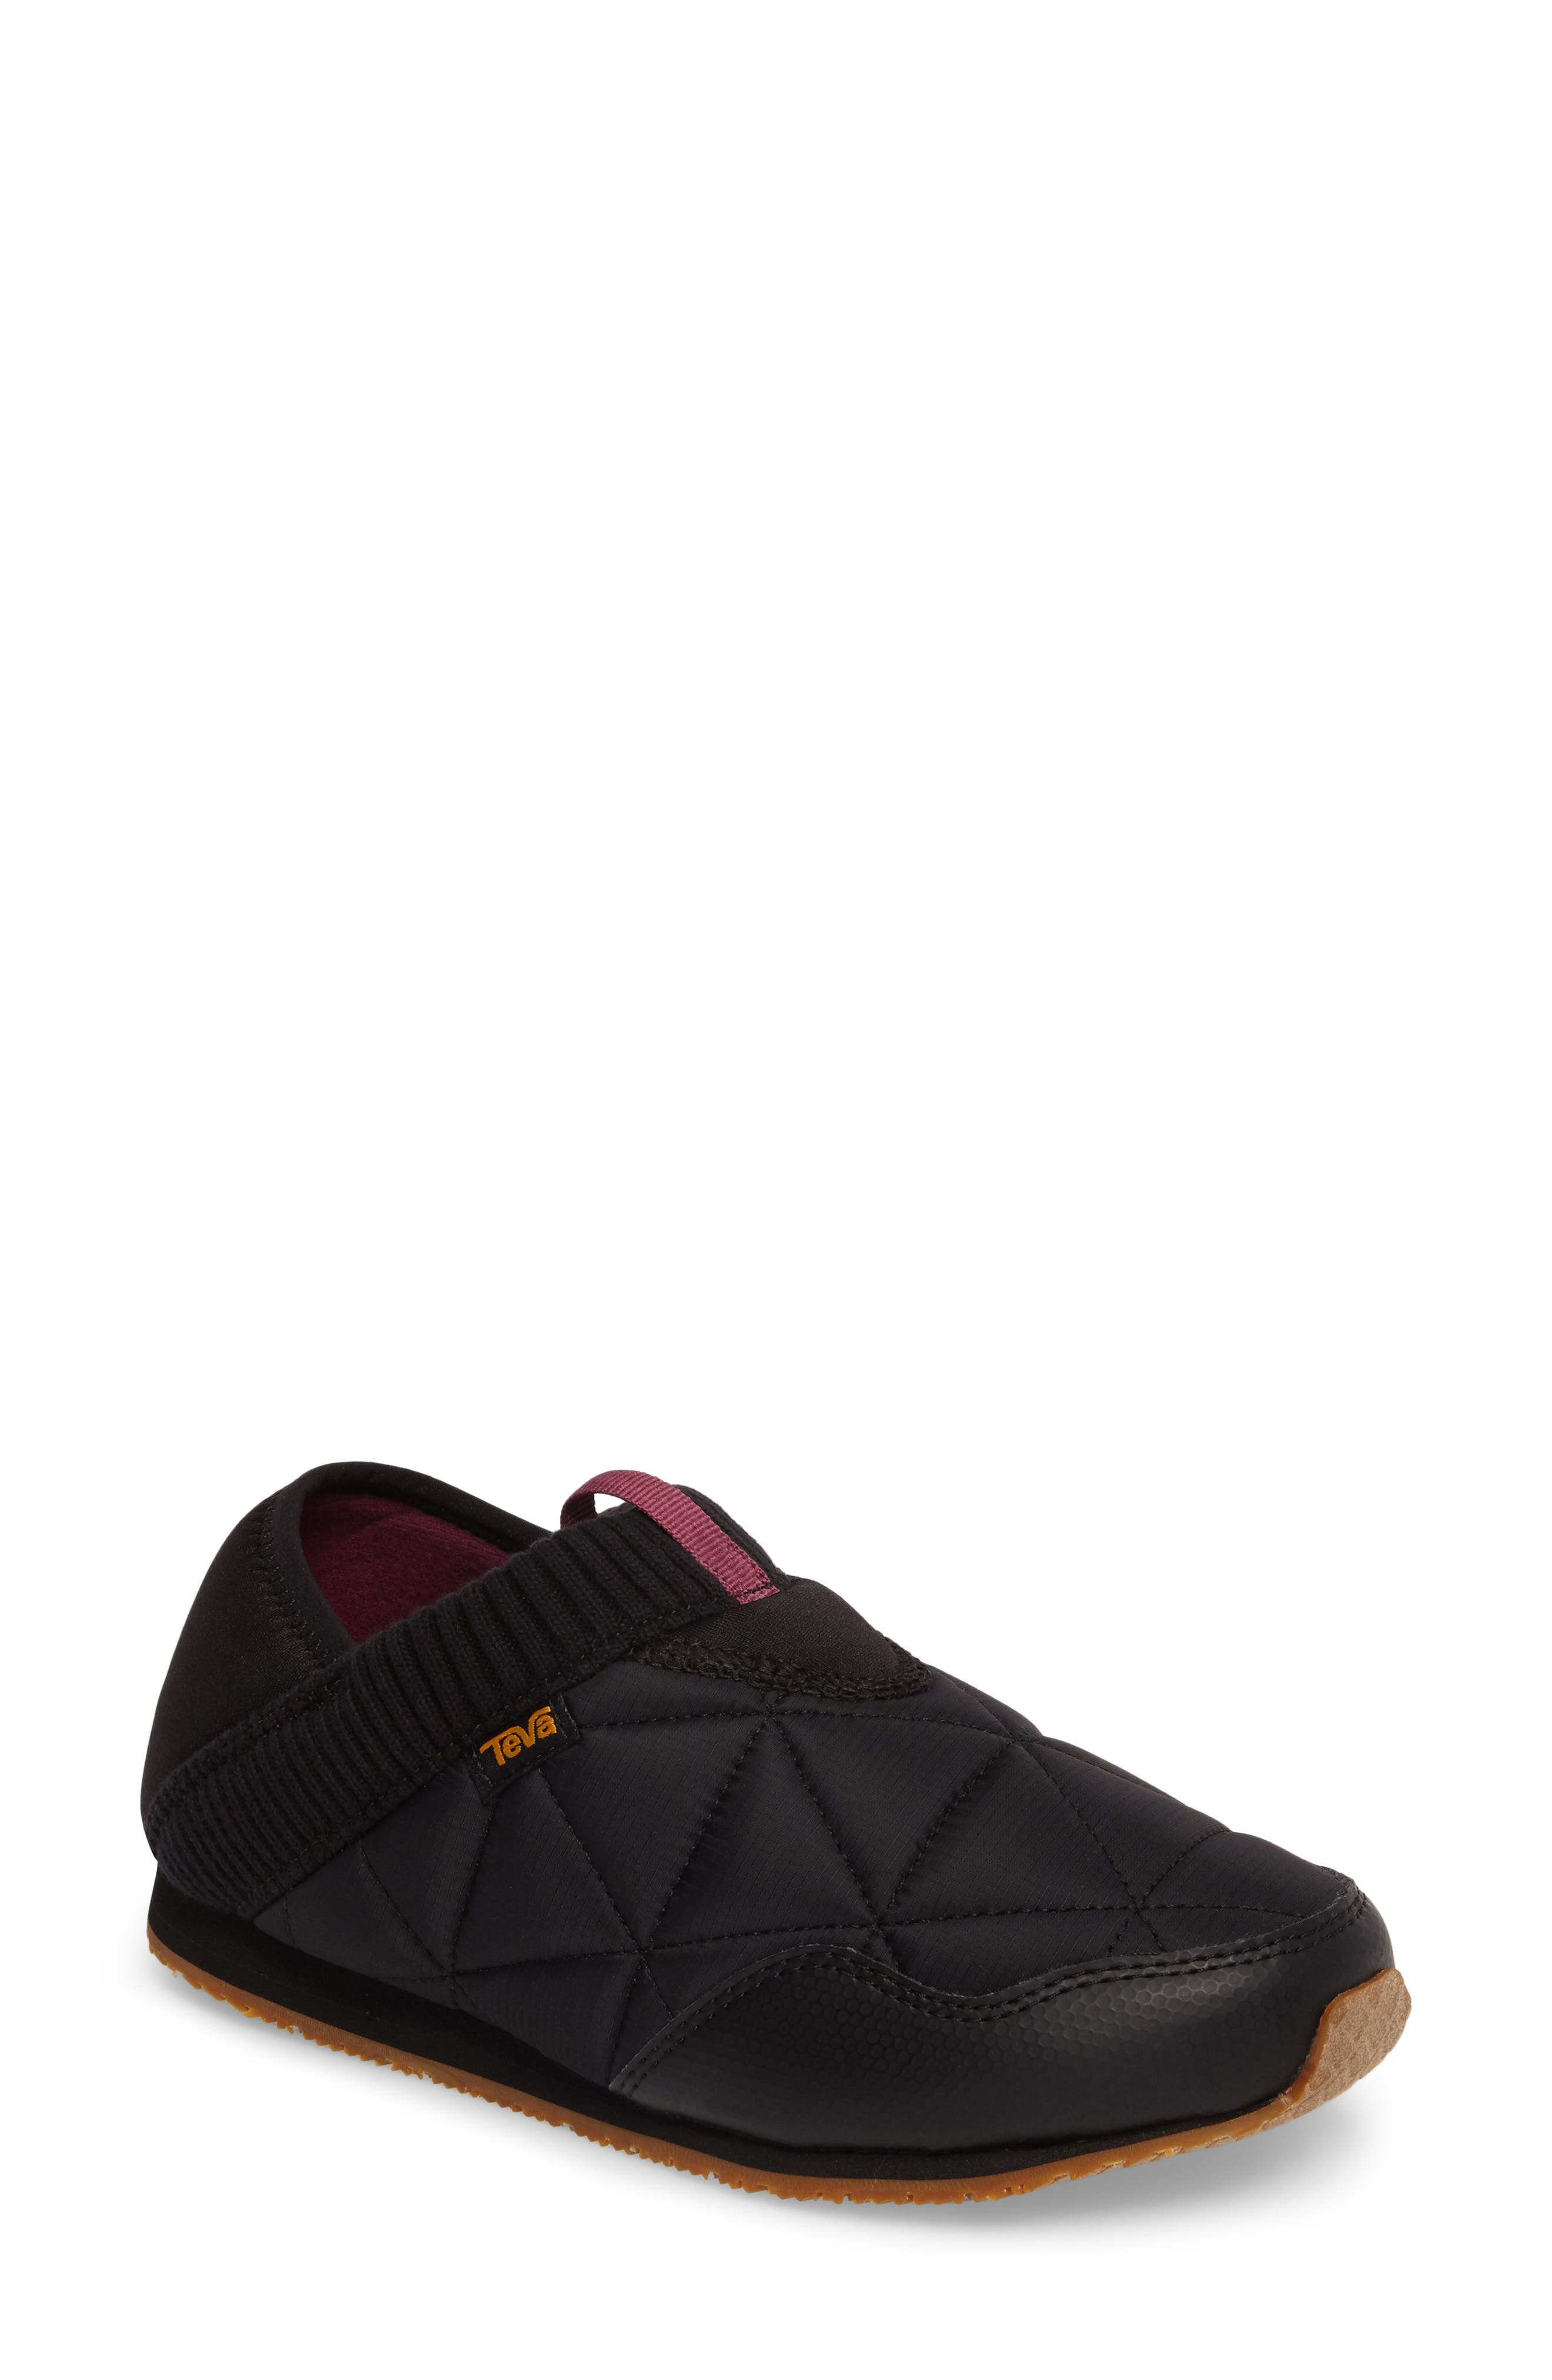 Ember Convertible Slip-On,                         Main,                         color, BLACK FABRIC